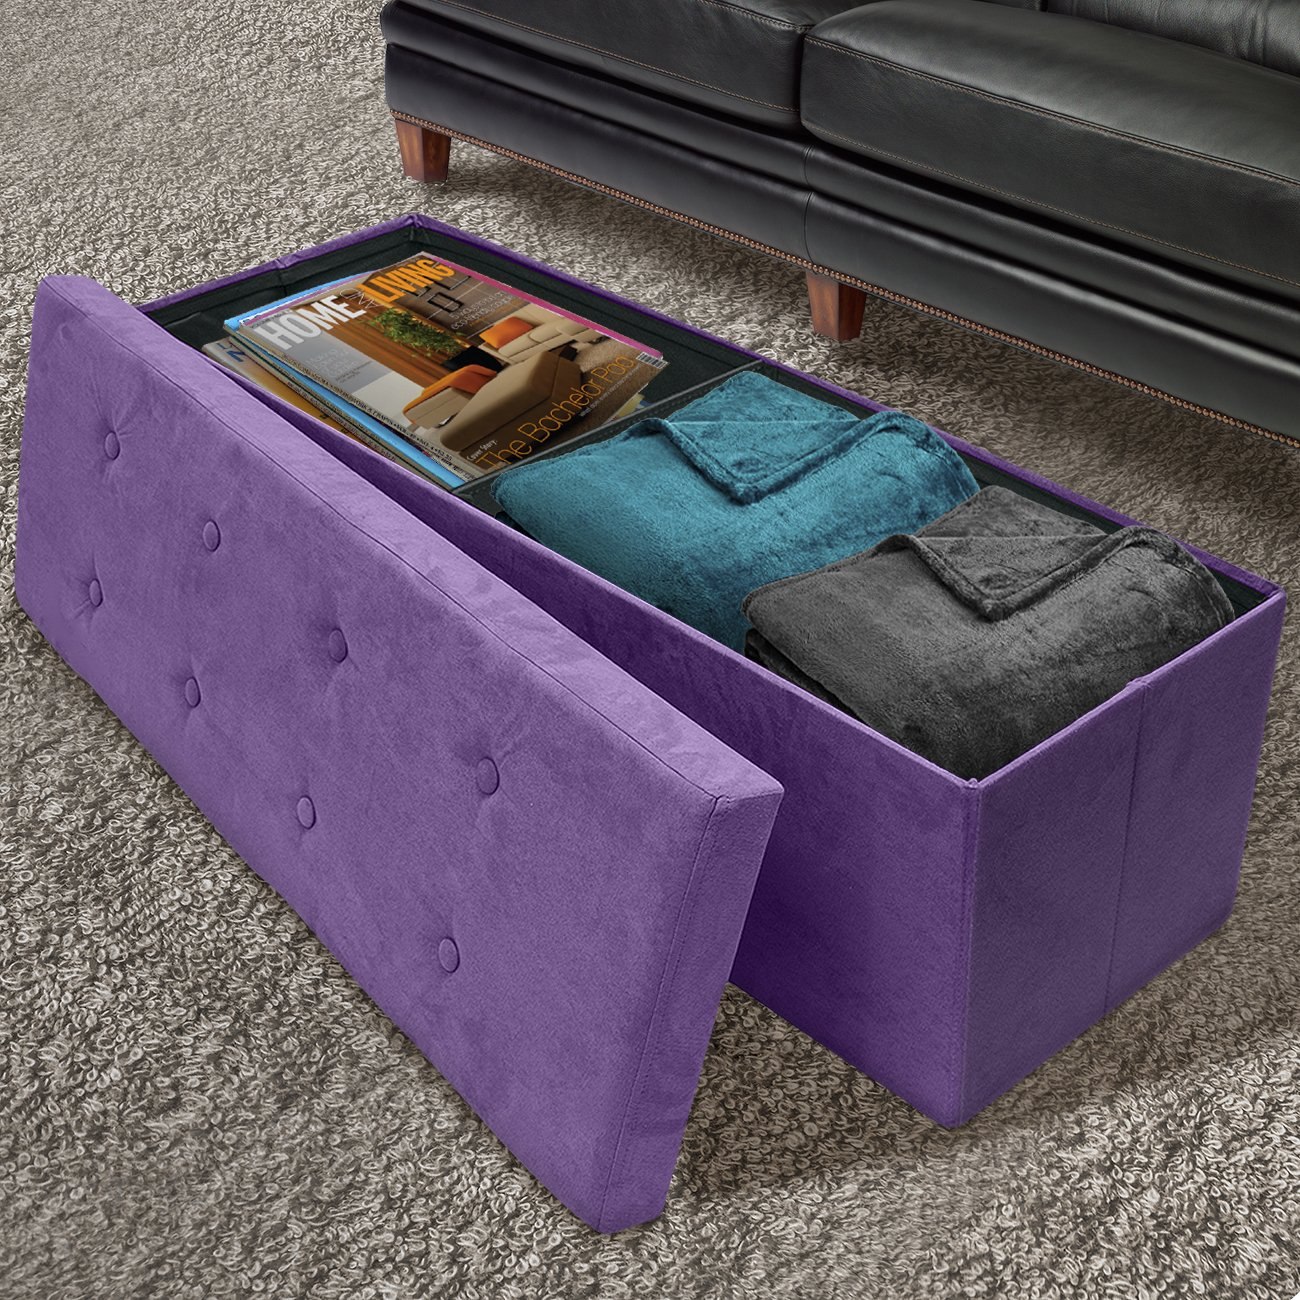 Sorbus Storage Ottoman Bench Collapsible Folding Bench Chest with Cover Perfect Toy and Shoe Chest, Hope Chest, Pouffe Ottoman, Seat, Foot Rest, Contemporary Faux Suede Large-Bench, Purple